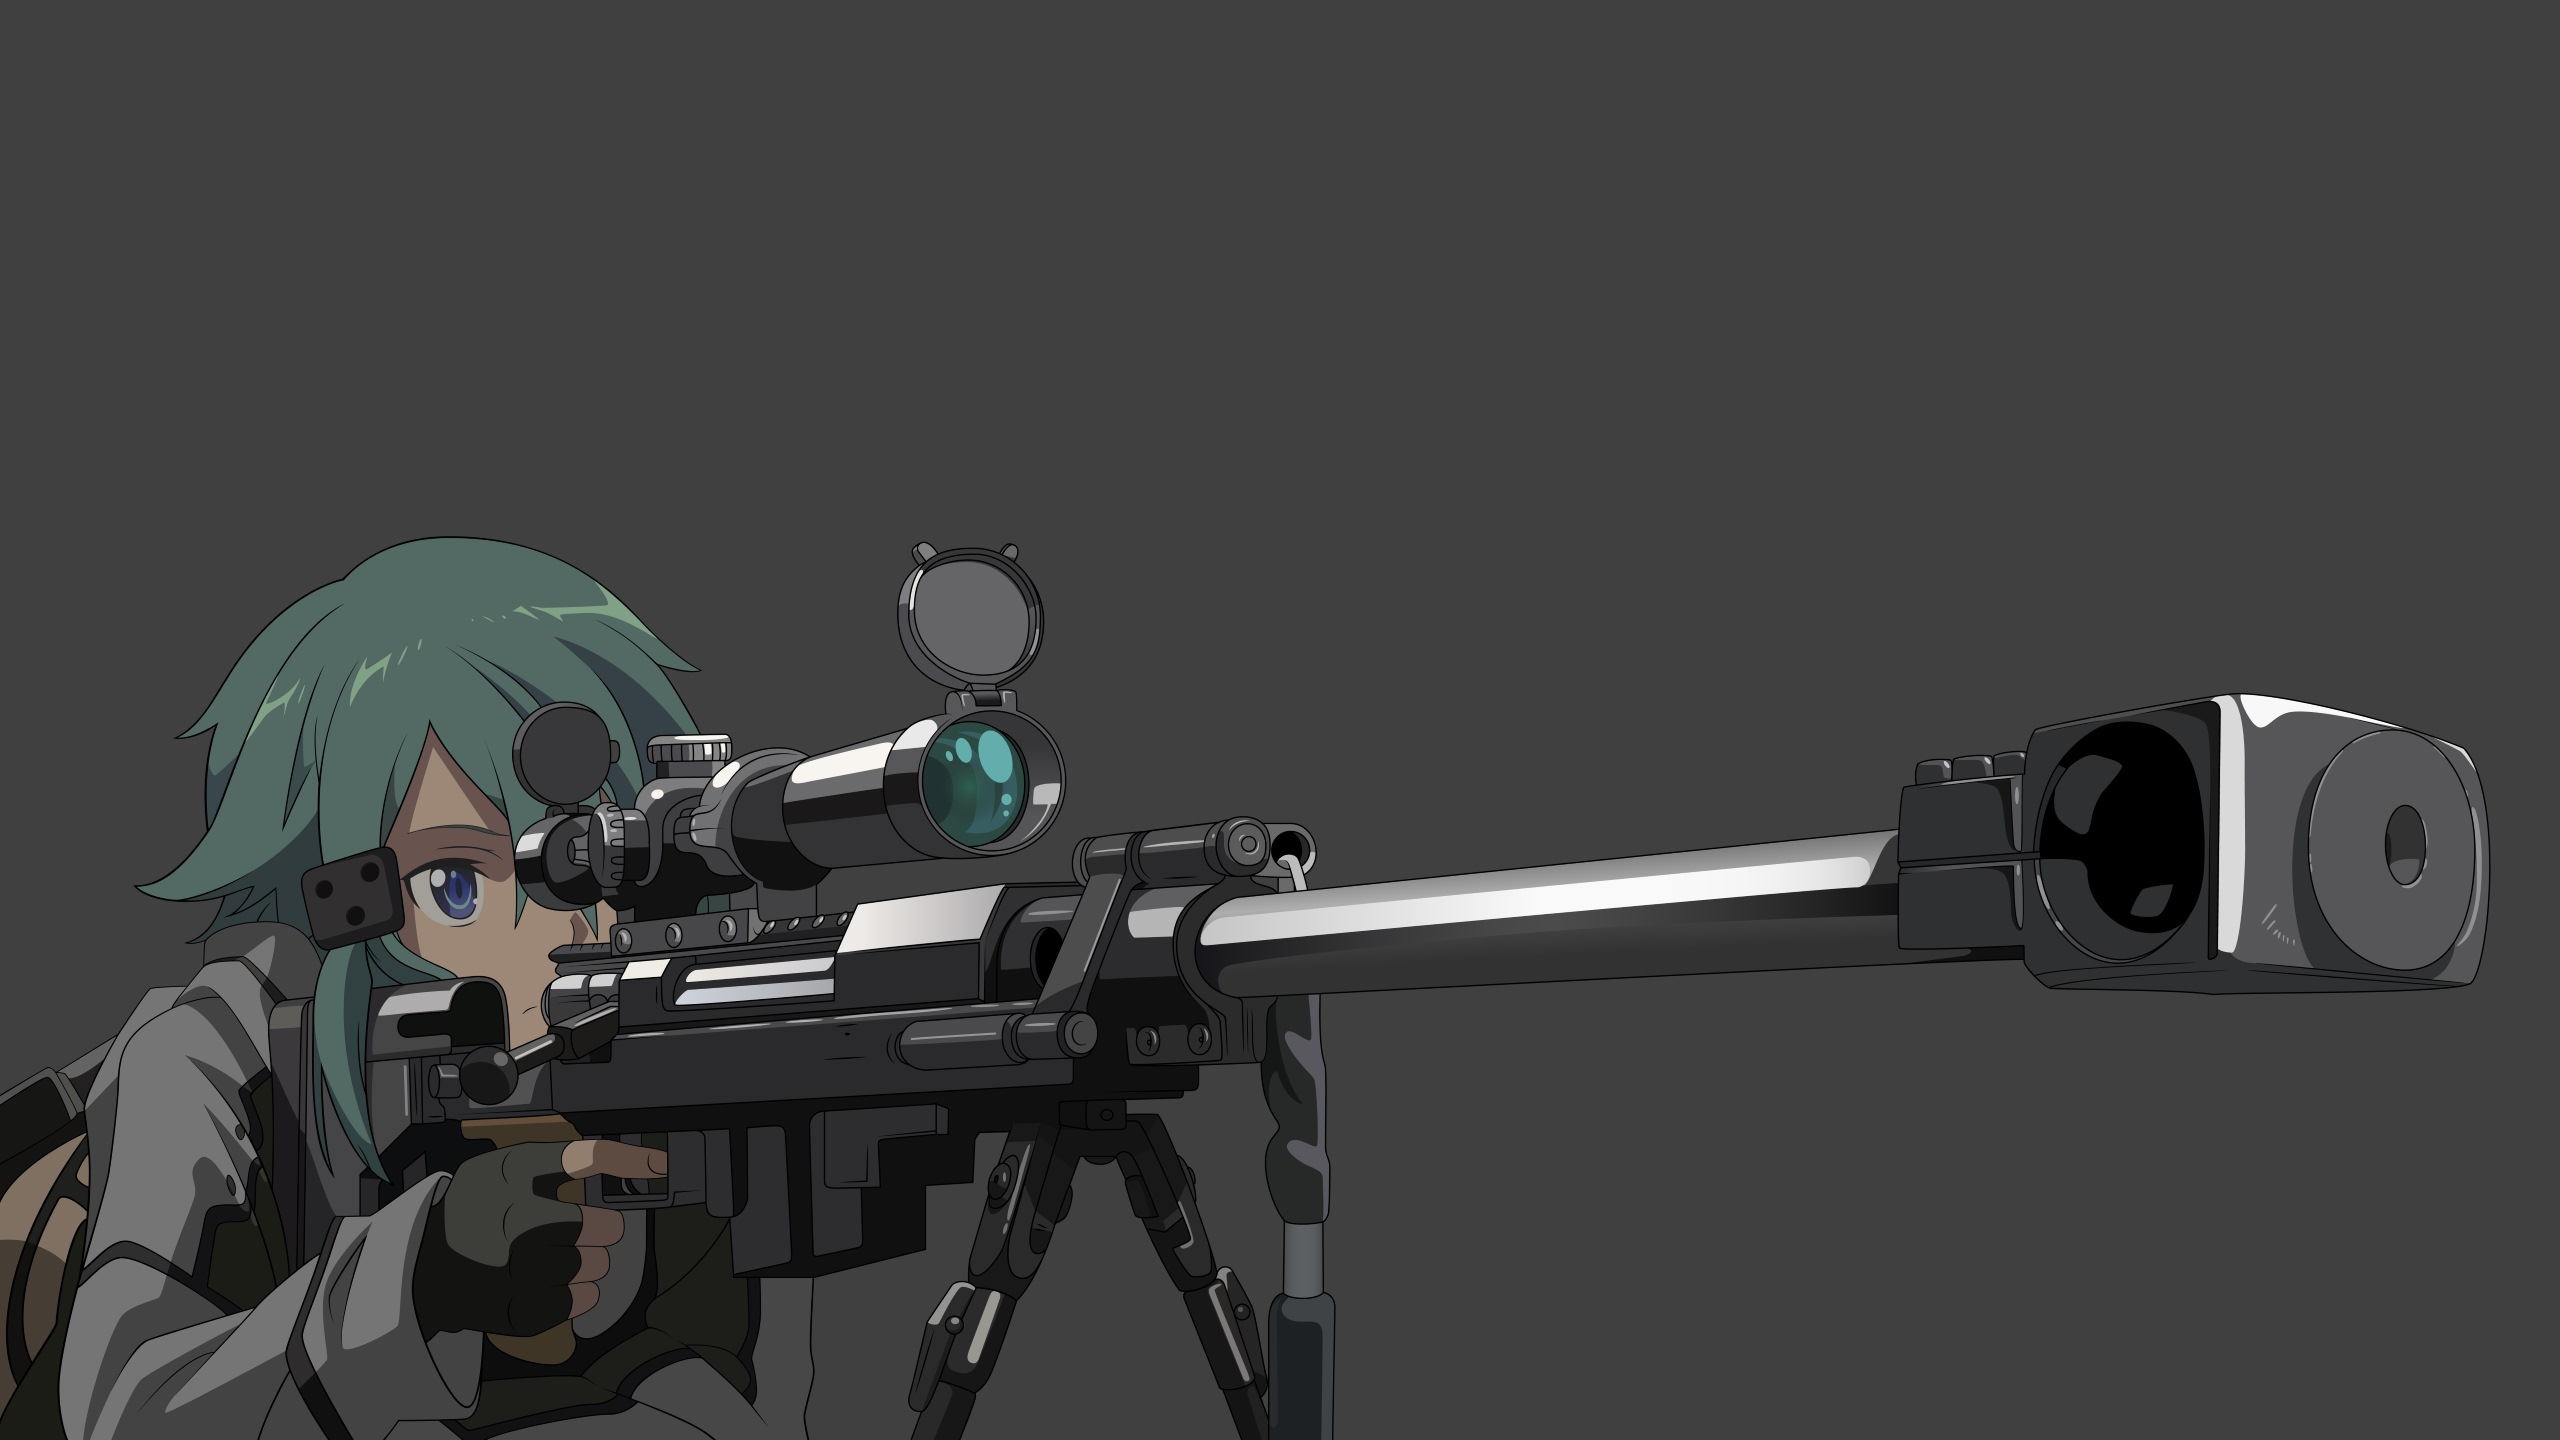 Sniper Rifle Wallpapers 36 Images Dodowallpaper